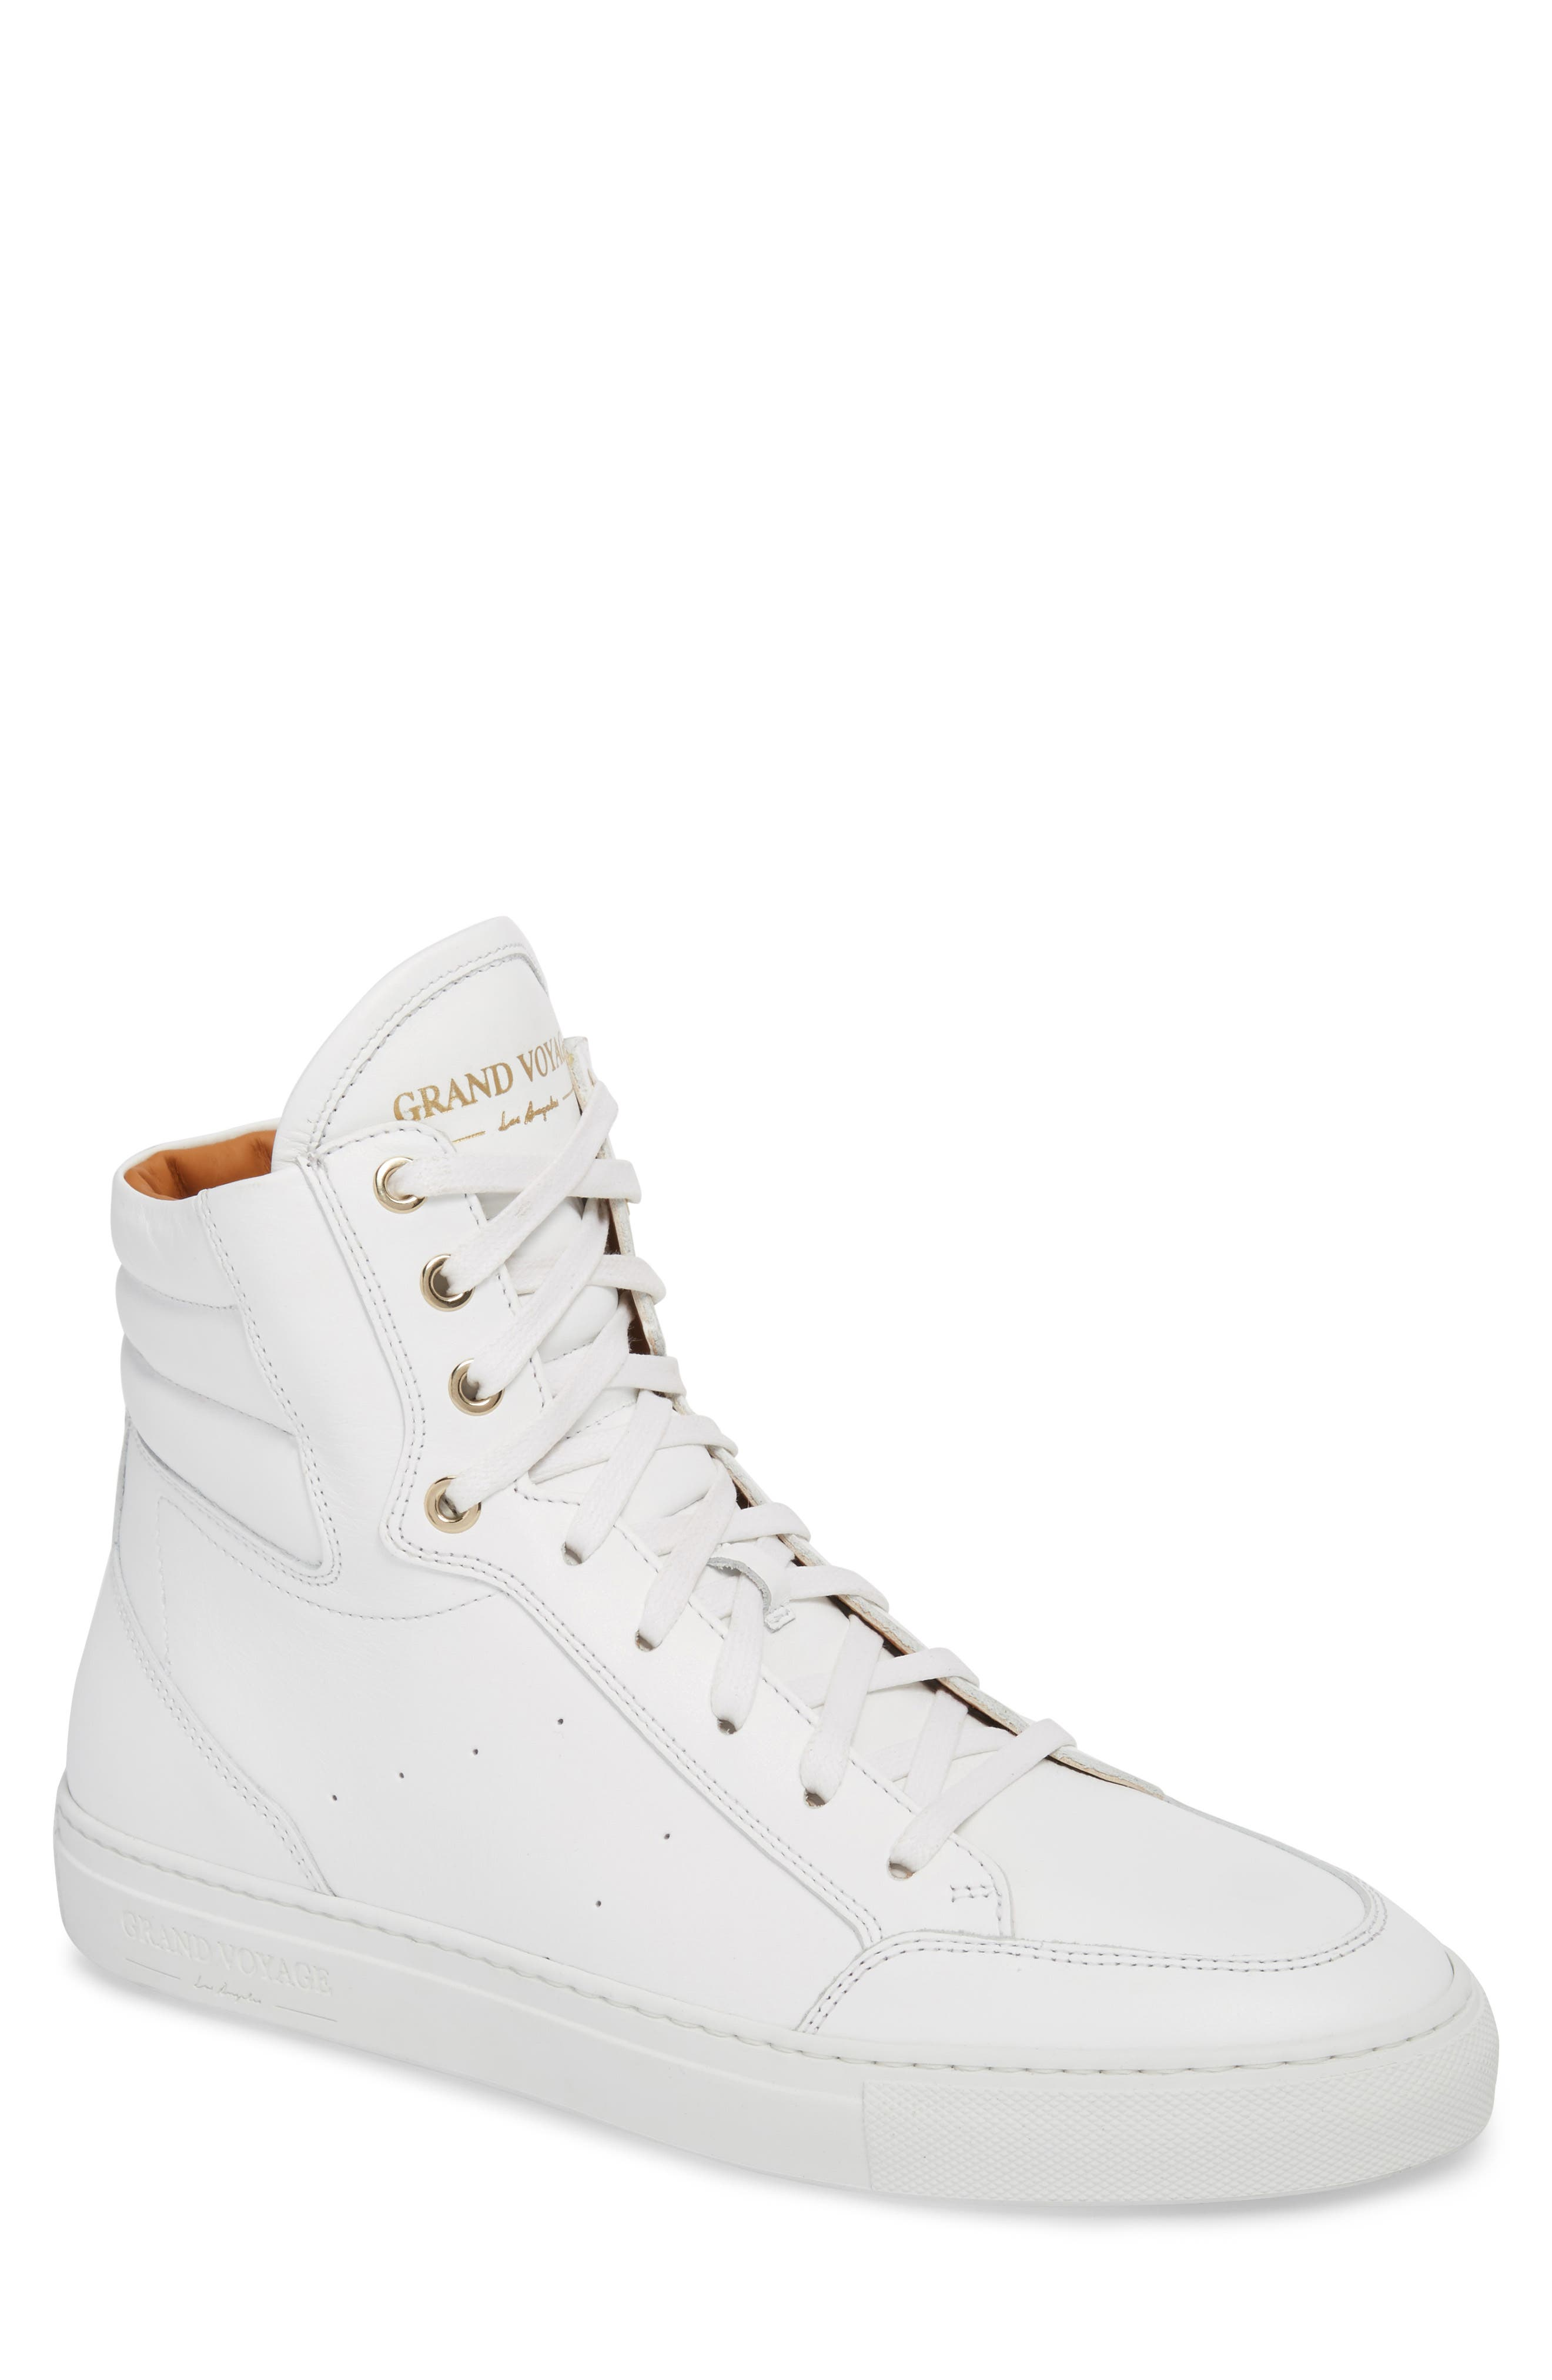 Alternate Image 1 Selected - Grand Voyage Belmondo Sneaker (Men)